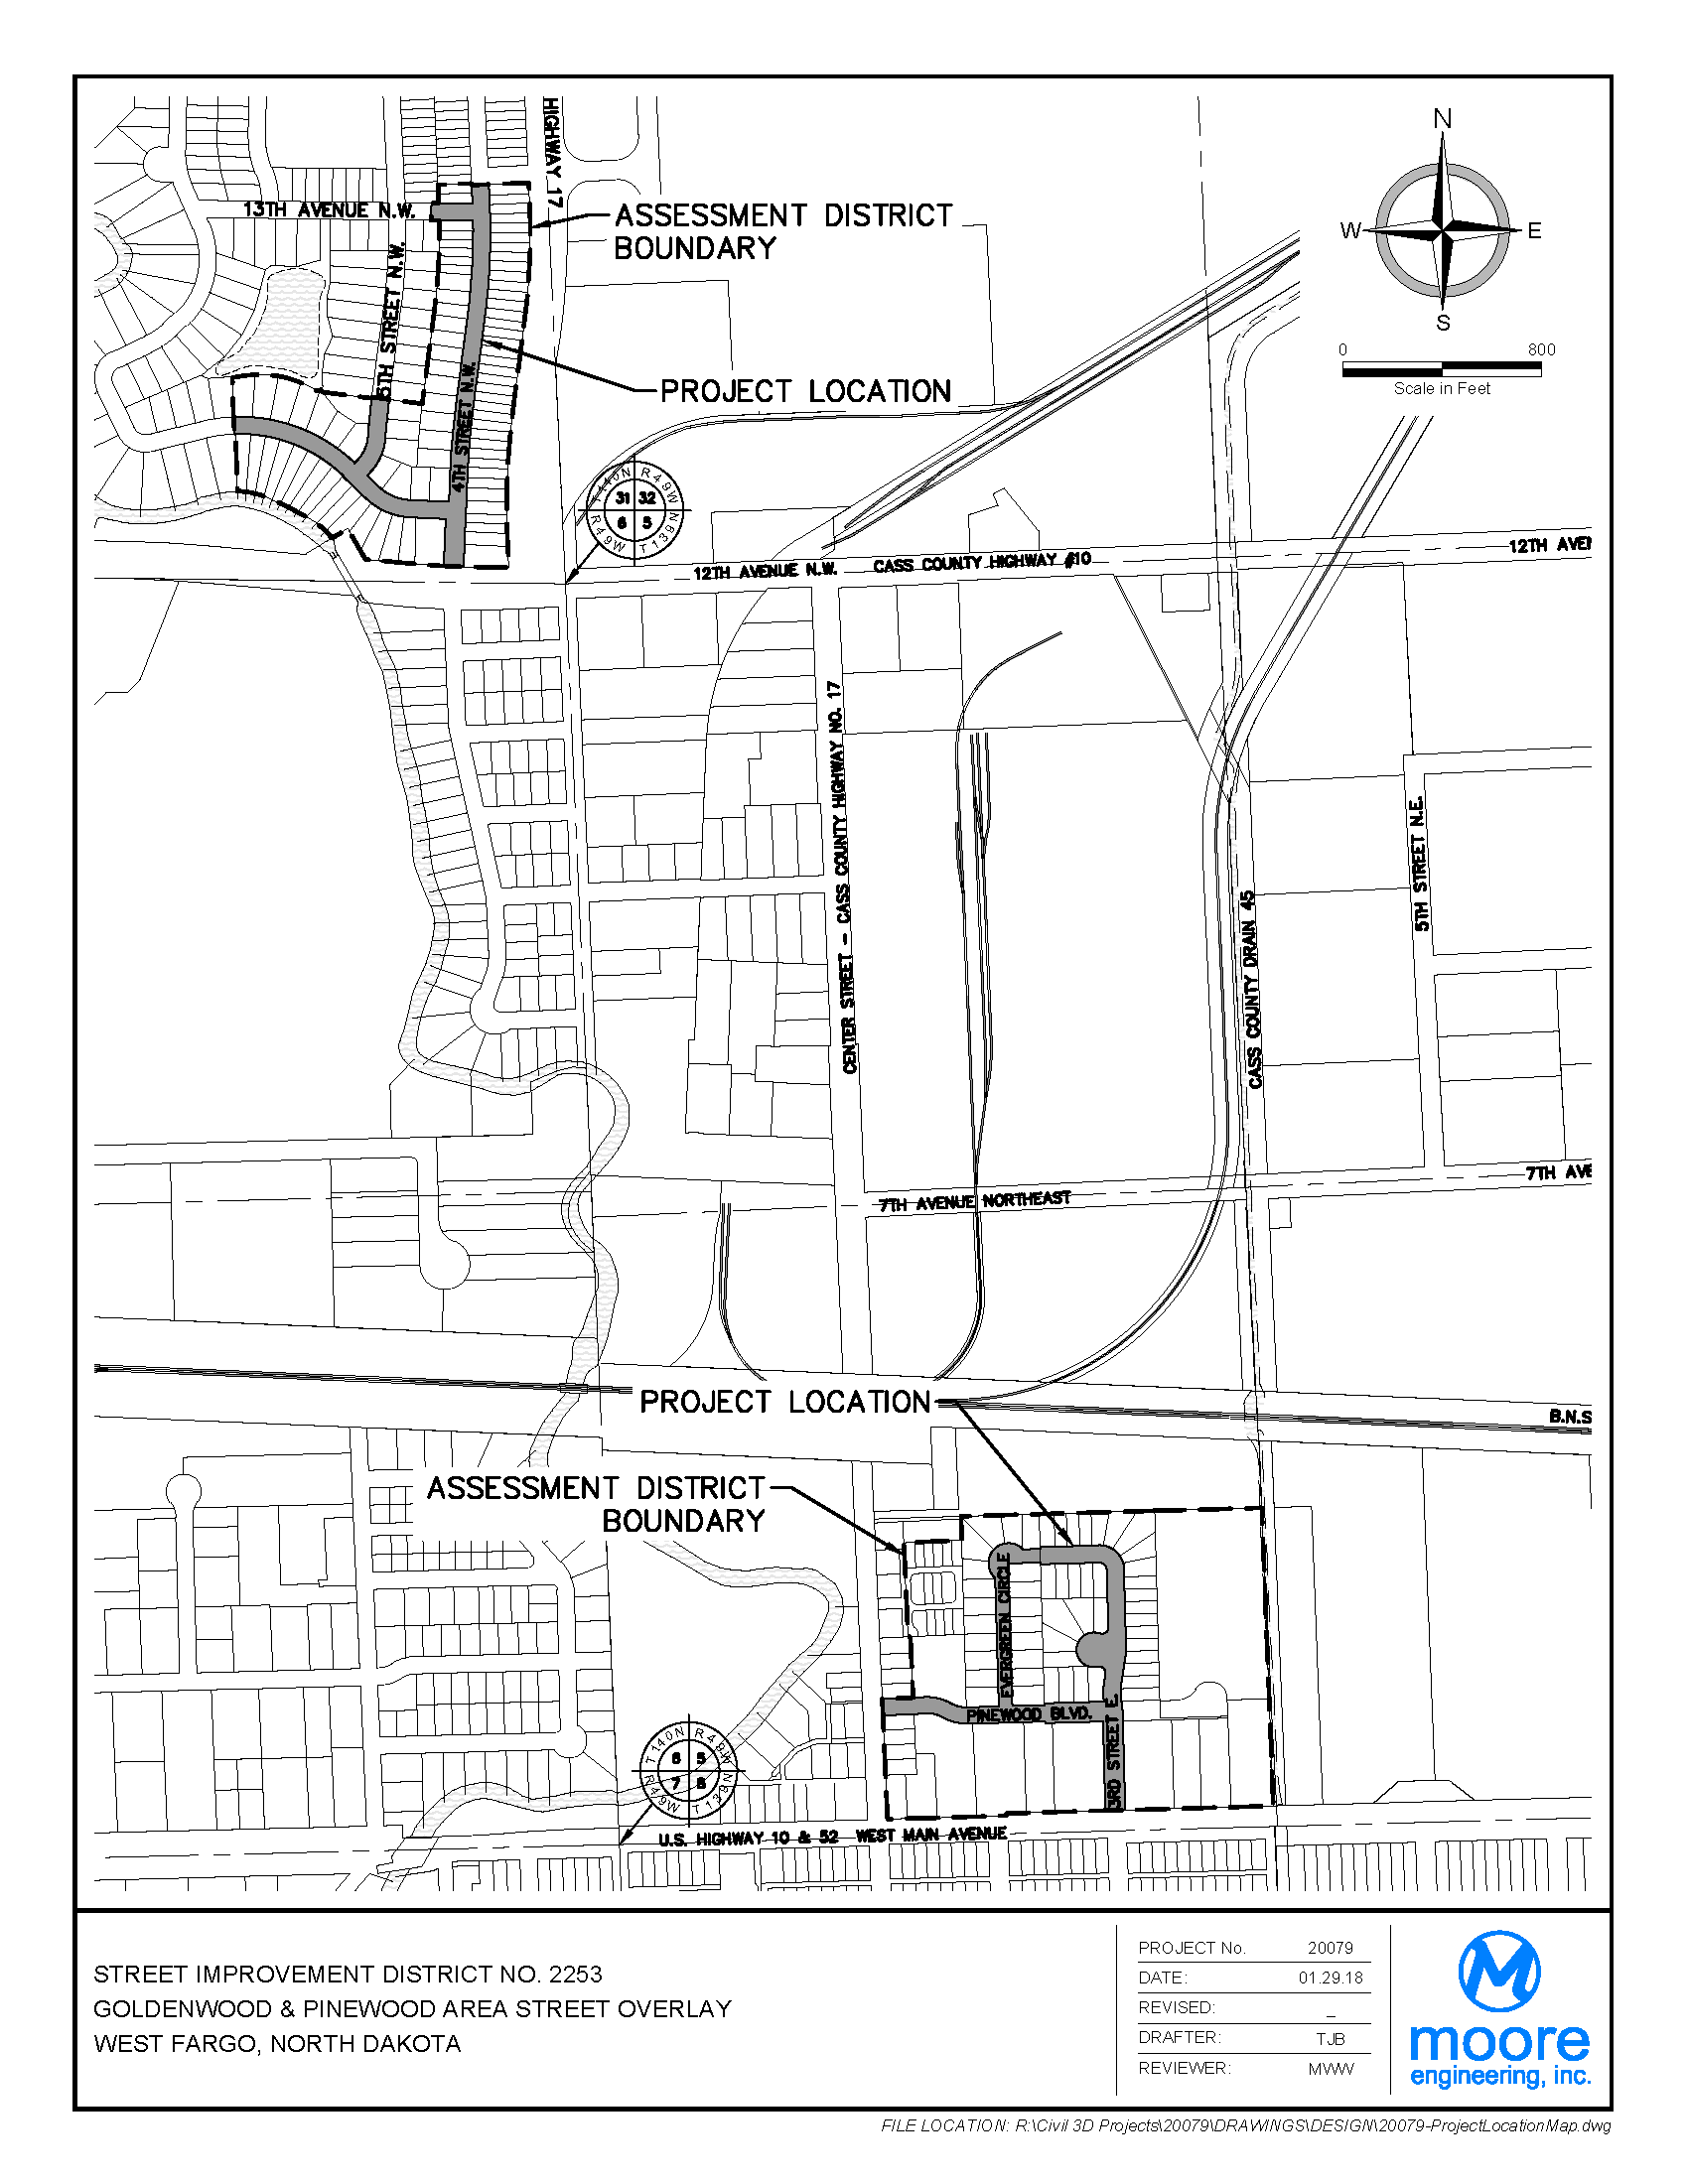 District No. 2253 Goldenwood and Pinewood Area Street Overlay Assessment District Boundary Map